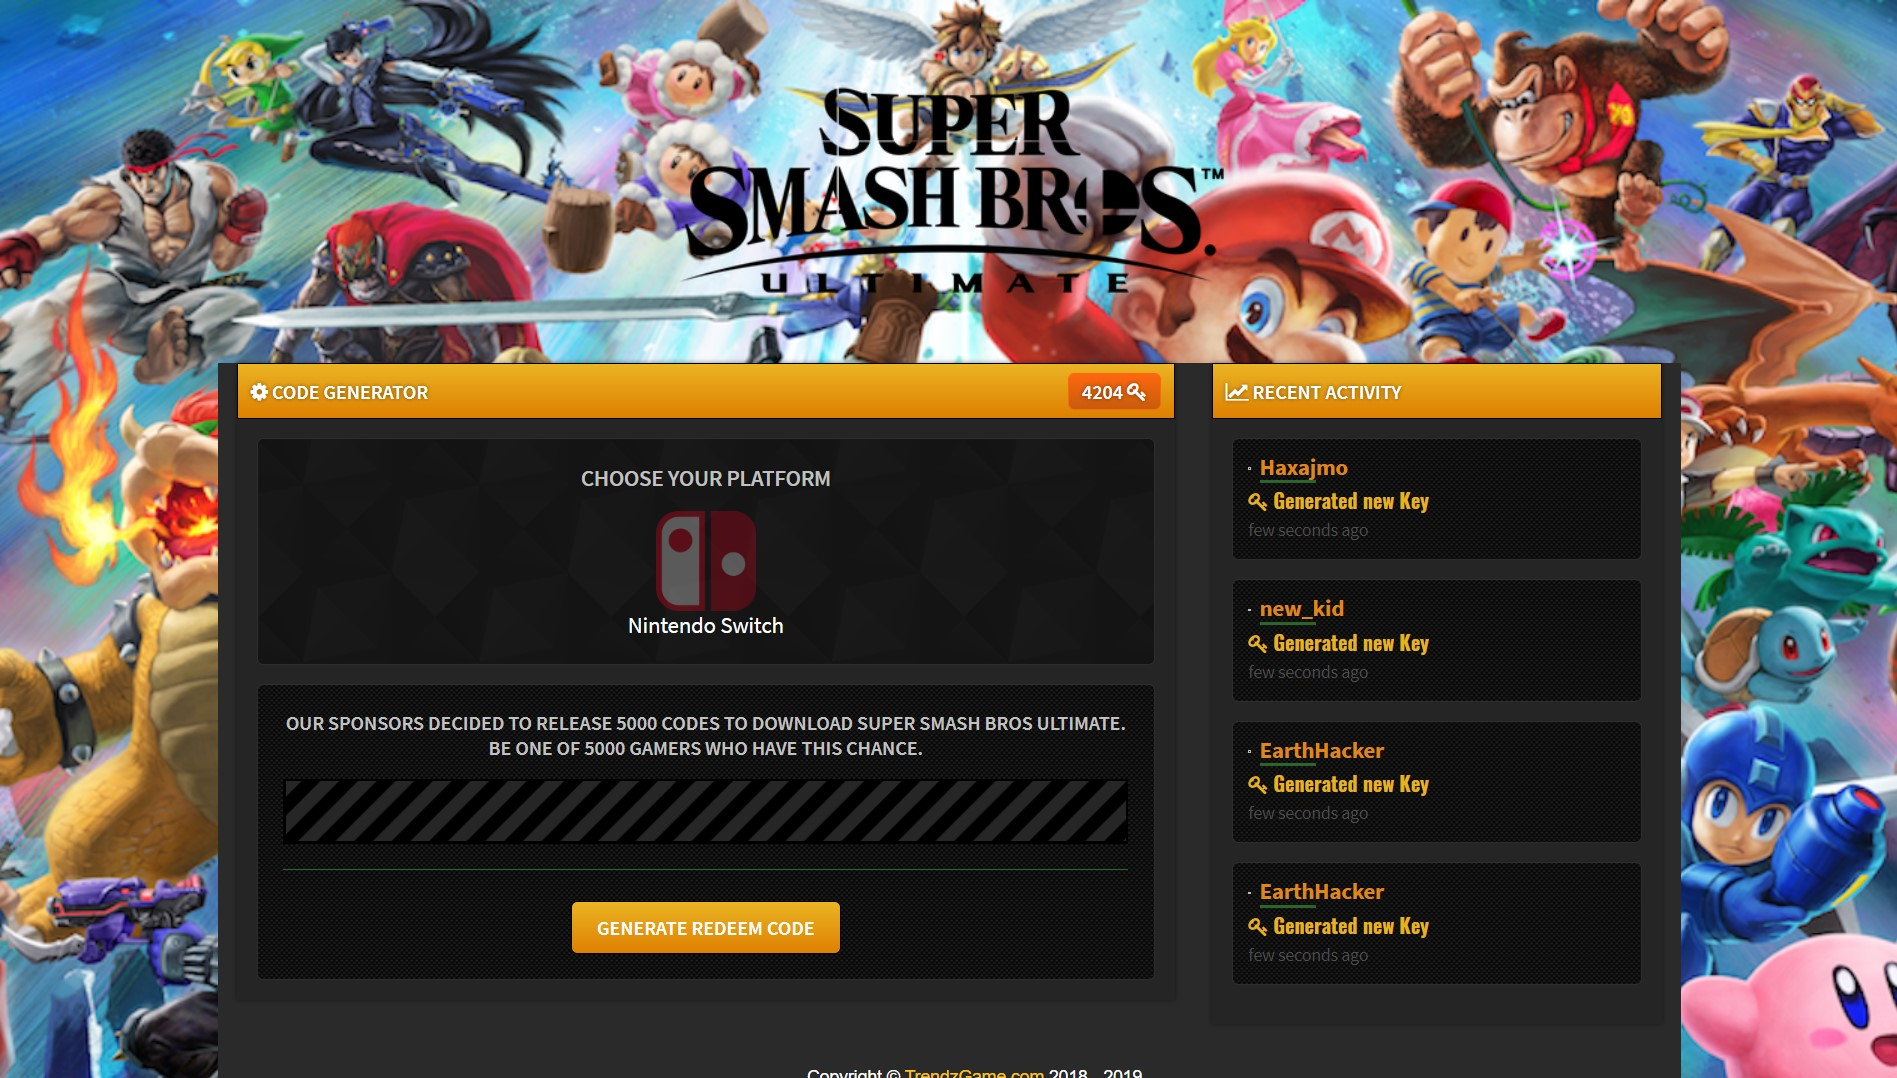 Super Smash Bros Ultimate Redeem Code